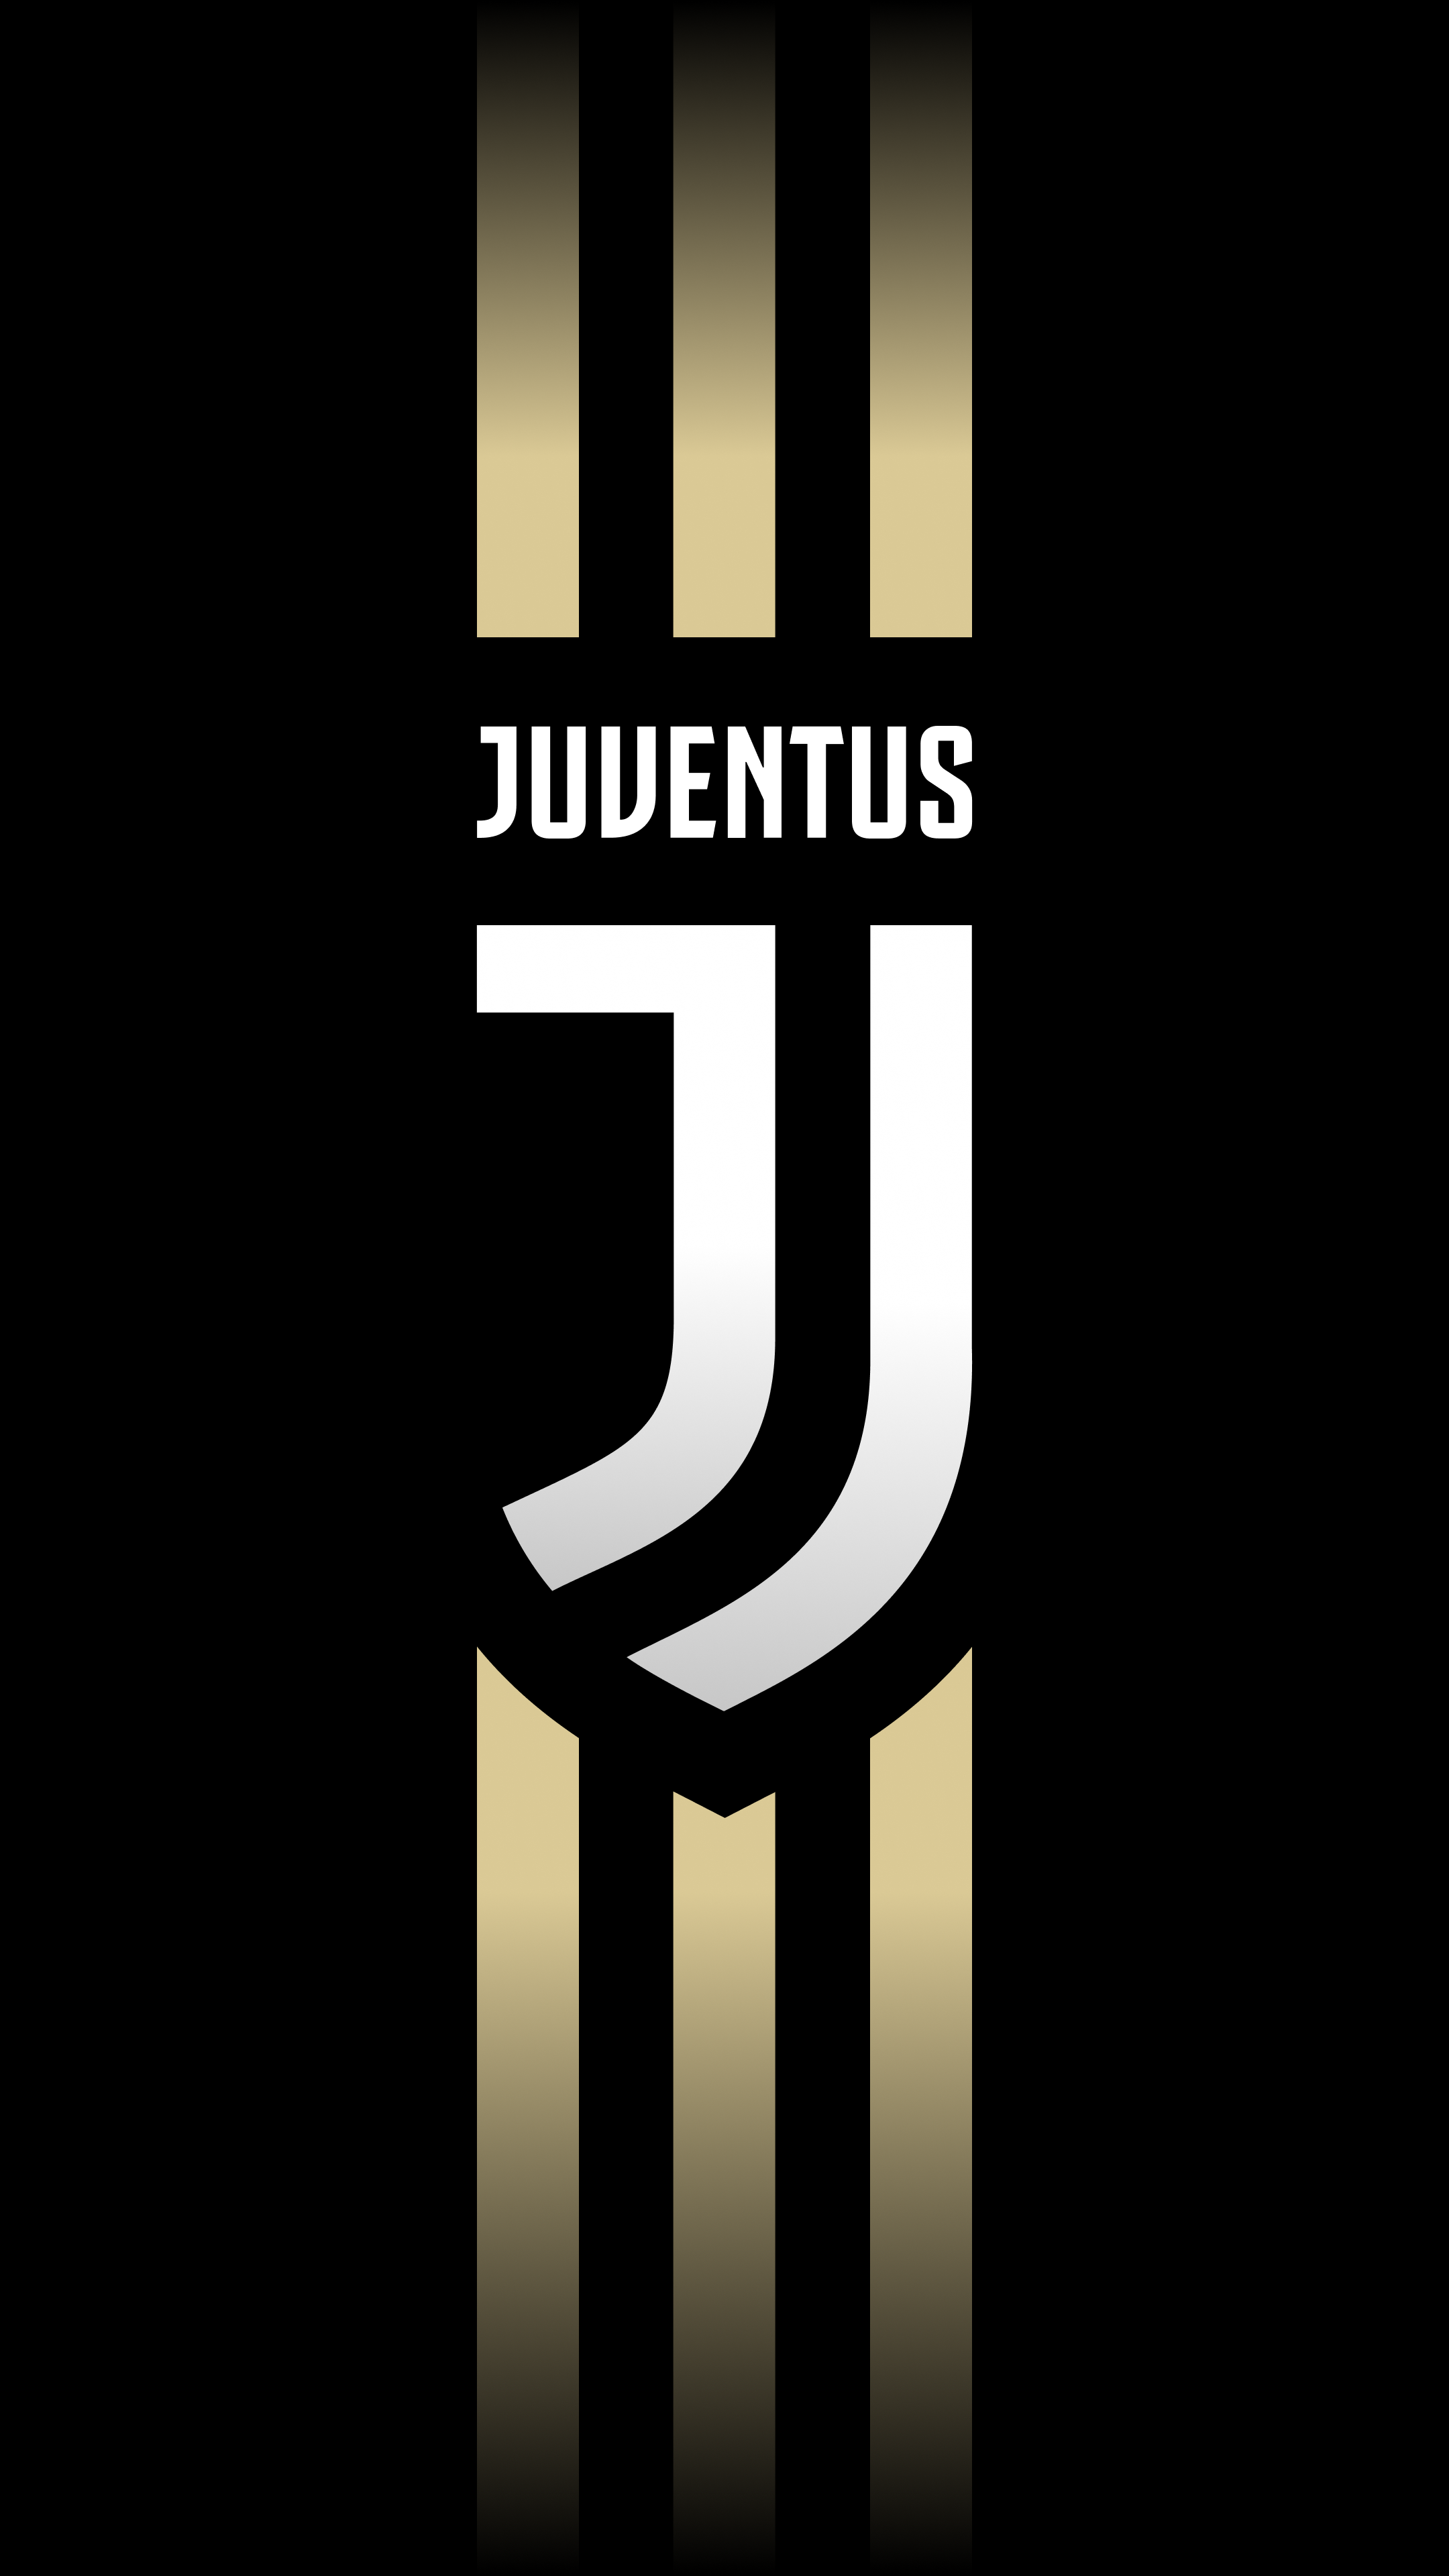 Juventus Logo Wallpaper iPhone Android  Cristiano Ronaldo  Football wallpaper iphone, Sports